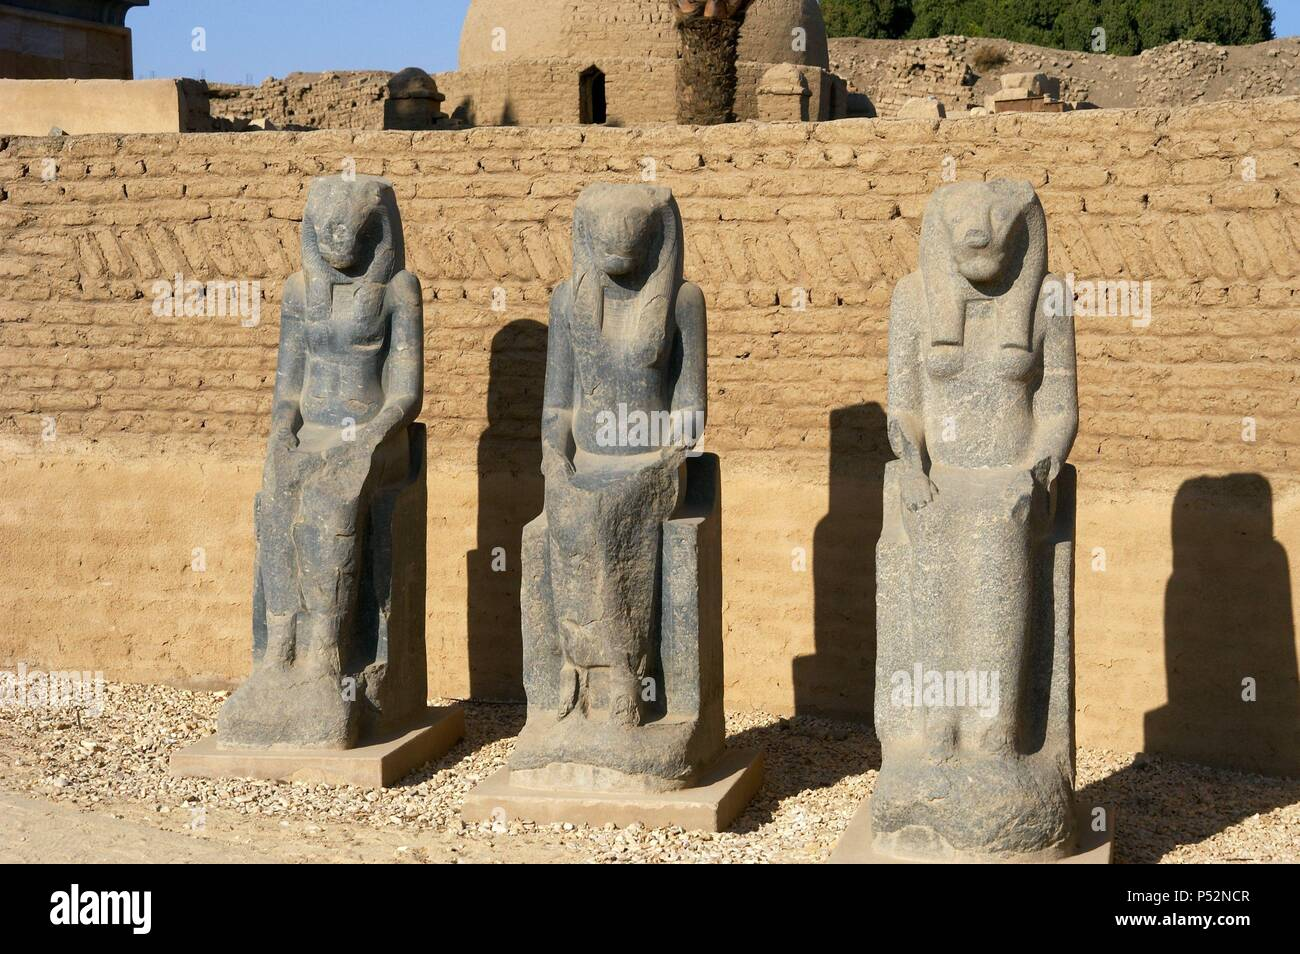 Statues of Goddess Sekhmet depicted with head of lioness and solar disk. Precinct of Mut. Karnak Temple Complex. Luxor. Egypt. Stock Photo